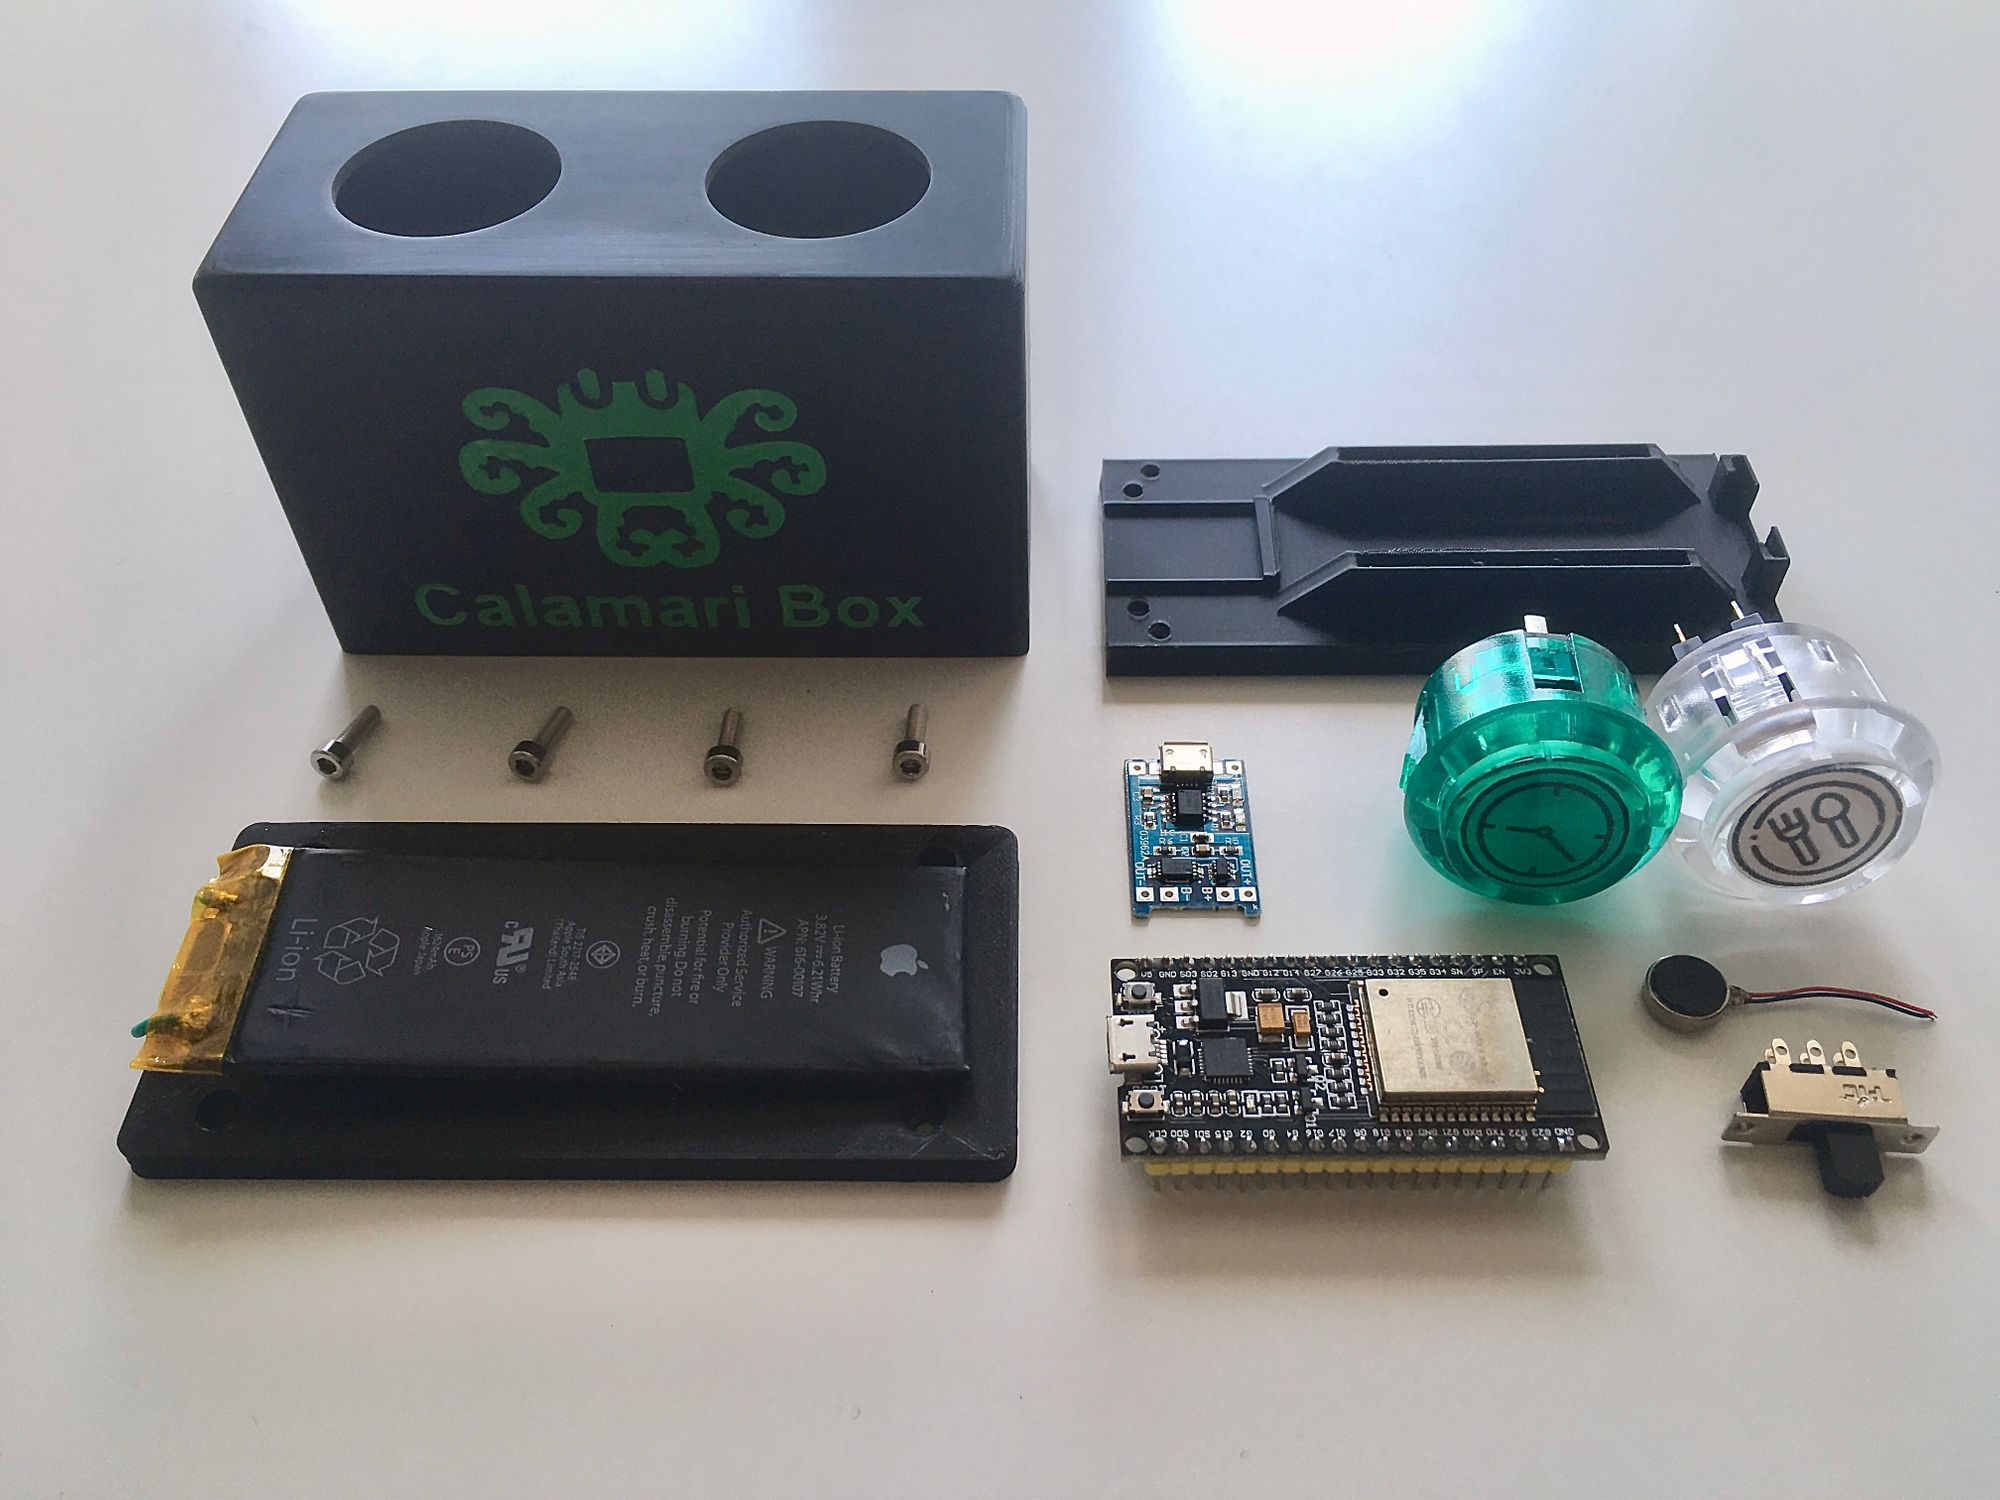 All the components ready to be assembled